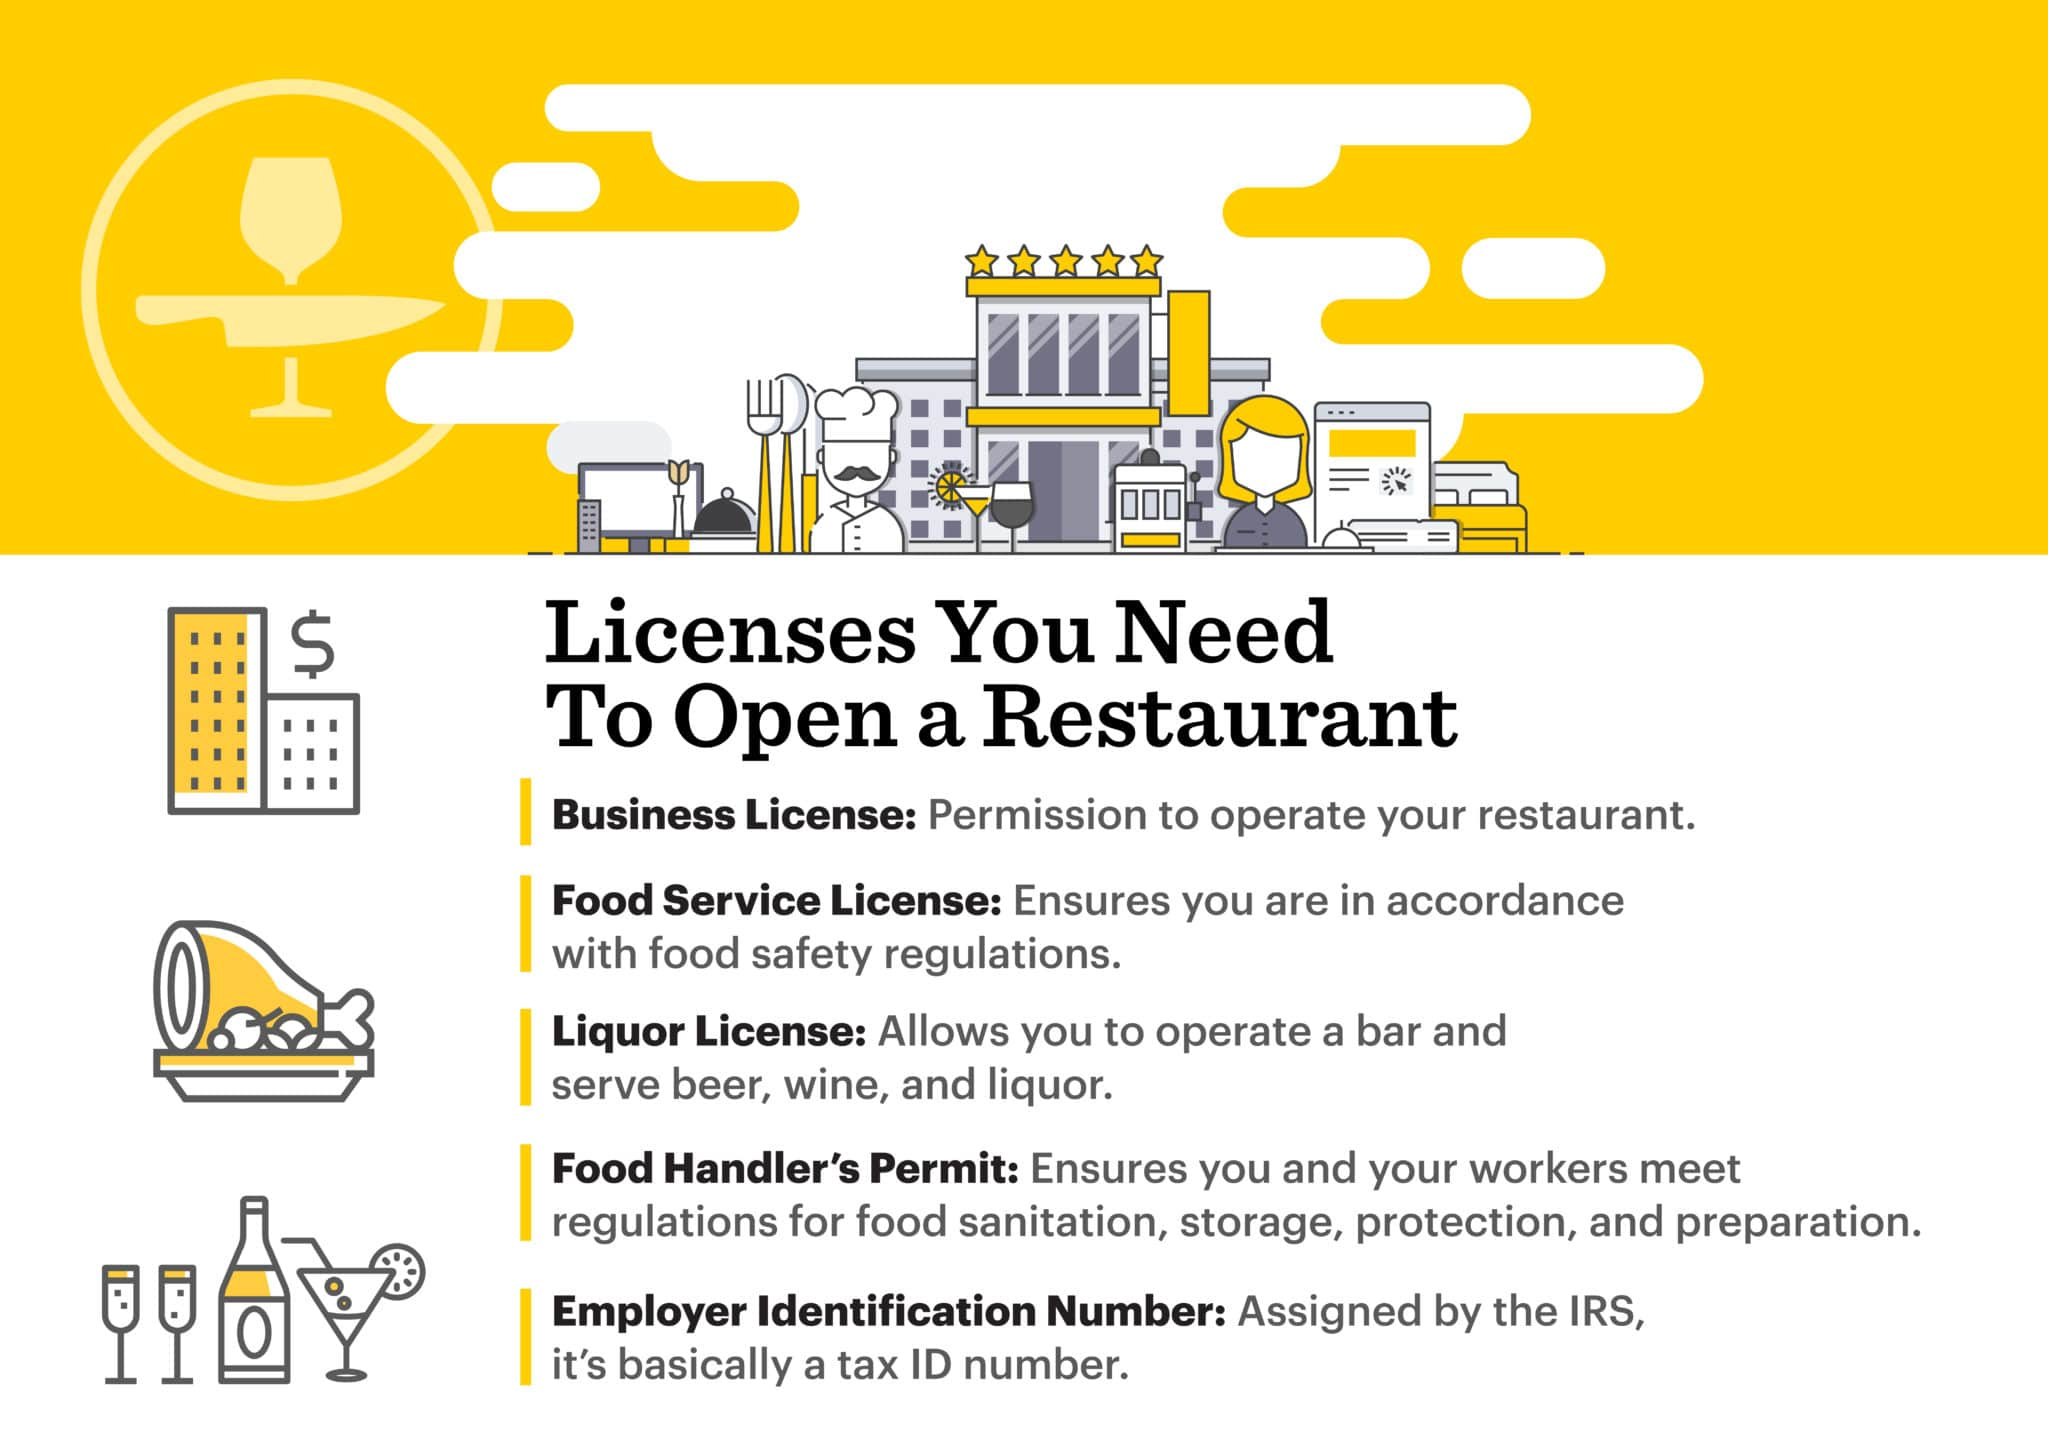 Learn more about business, food, liquor, and food permit licenses